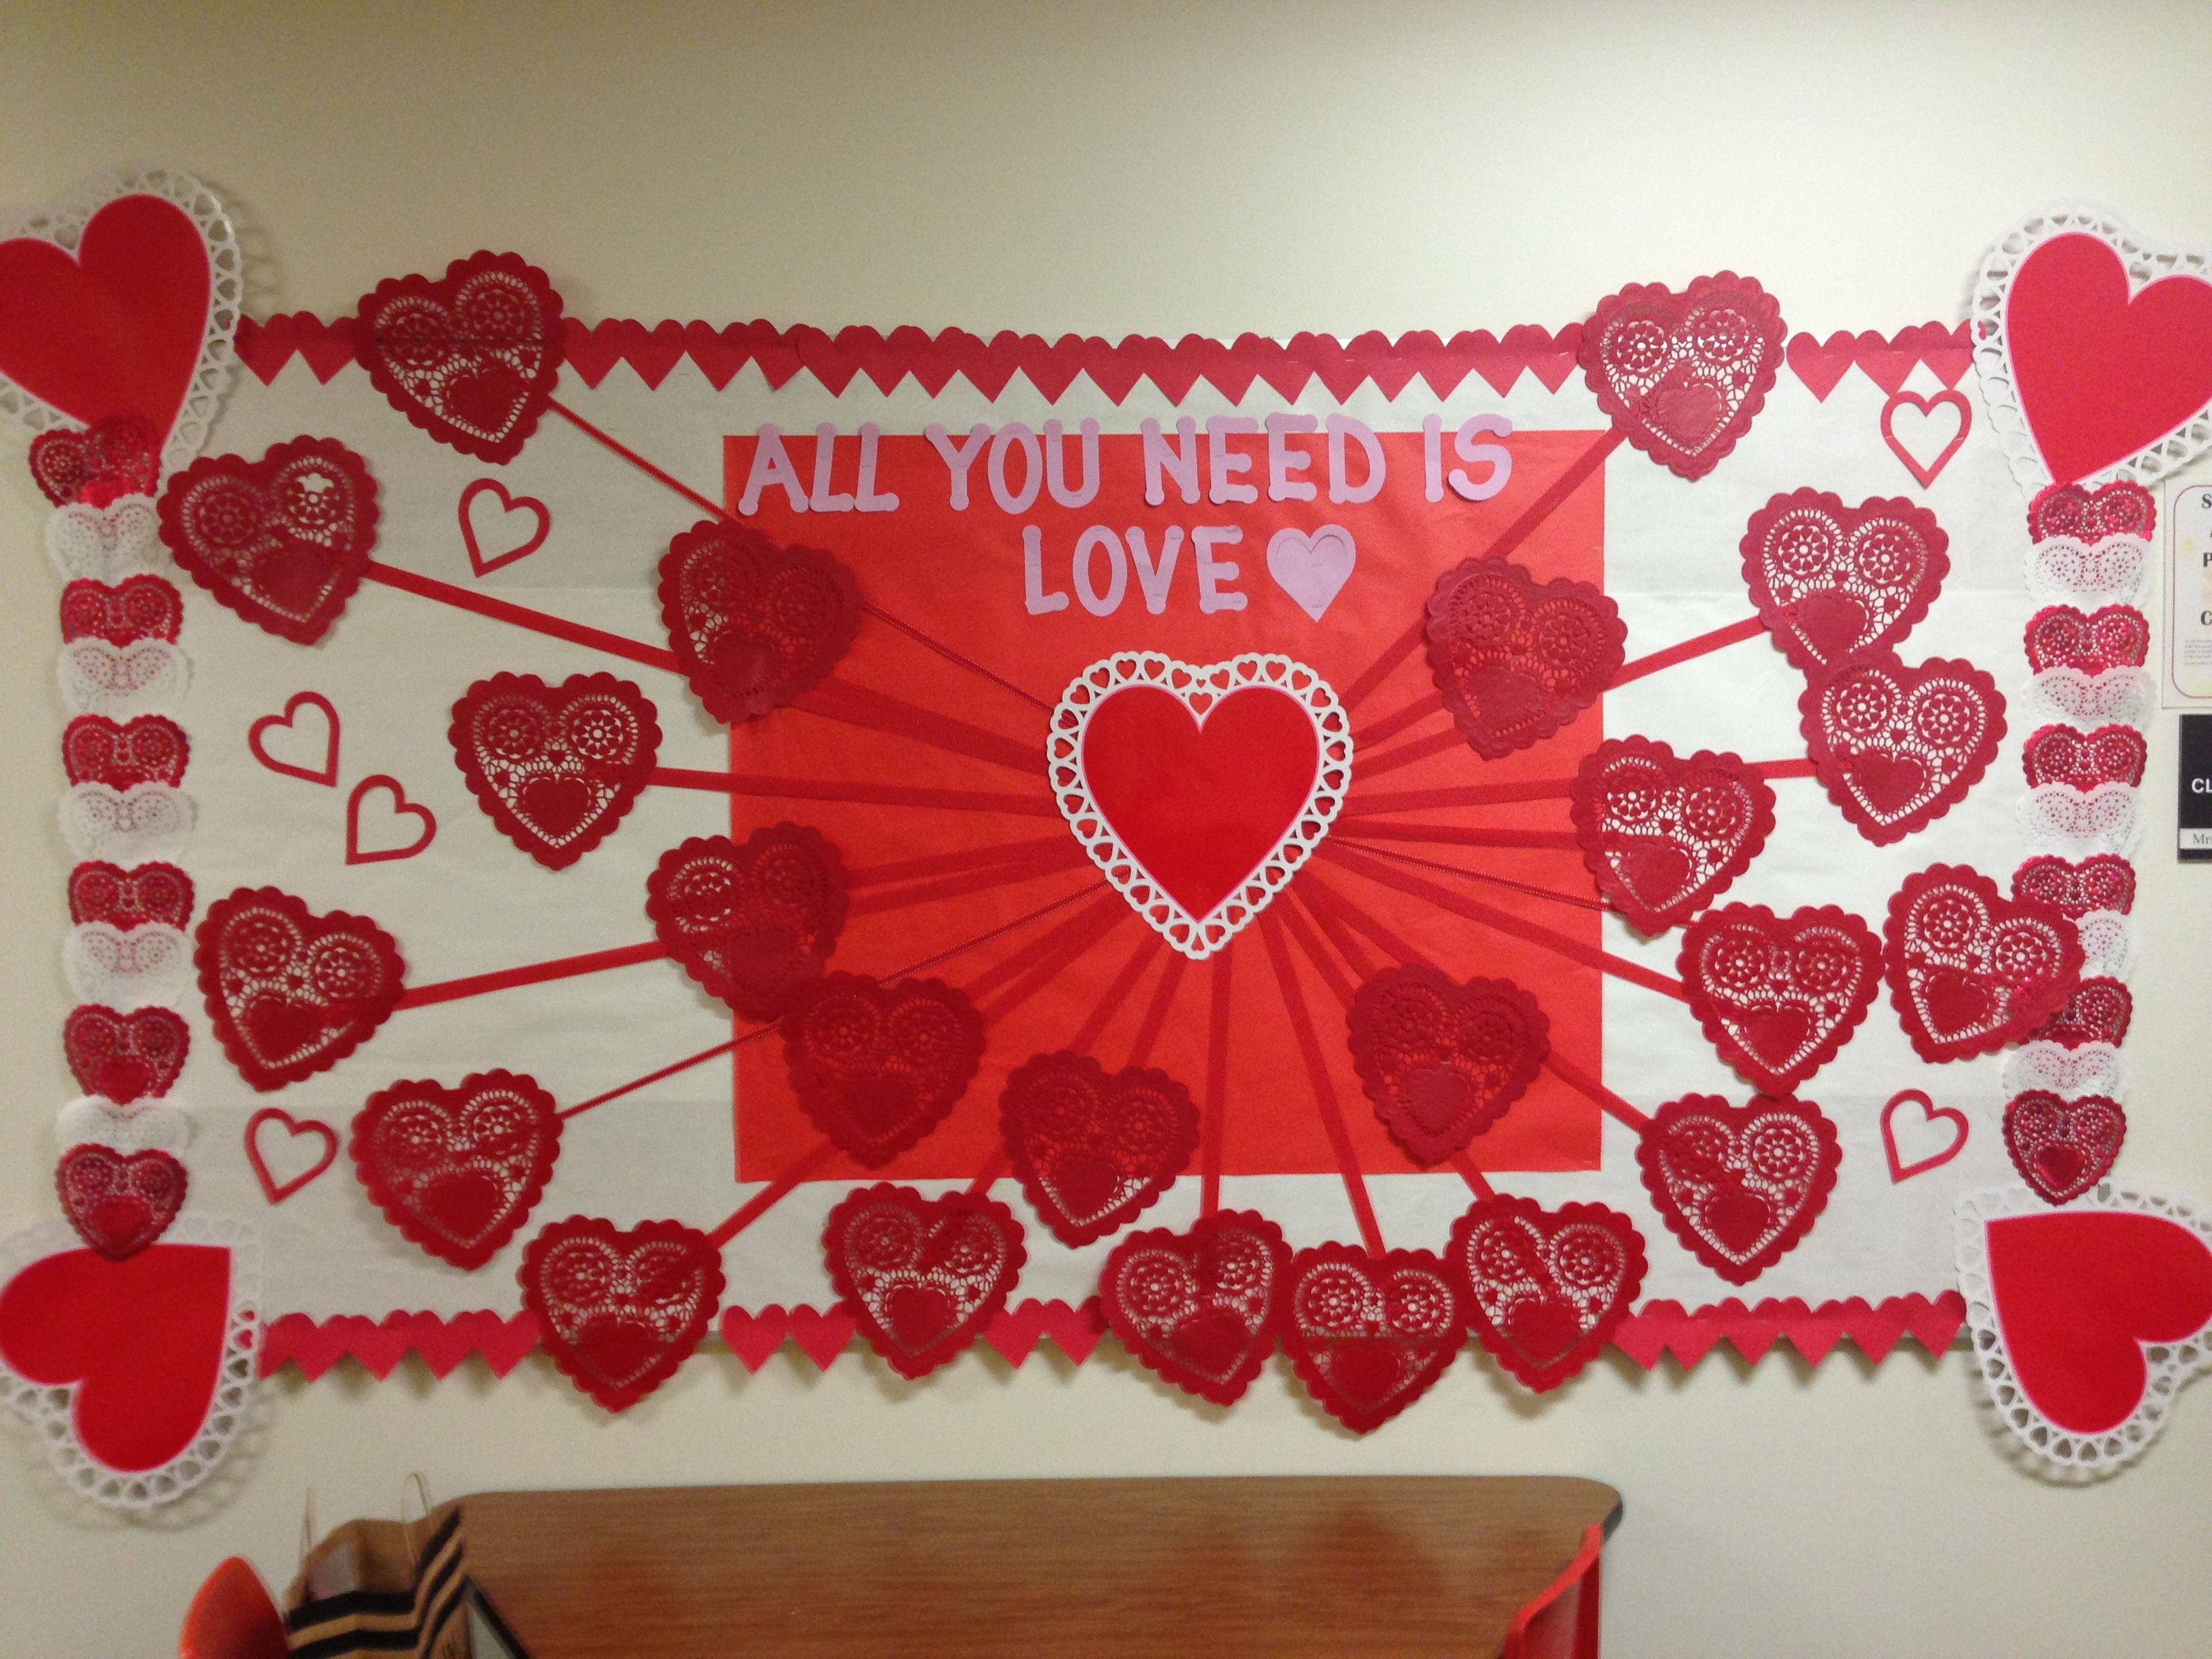 great valentine's day board idea - i would add little red or white